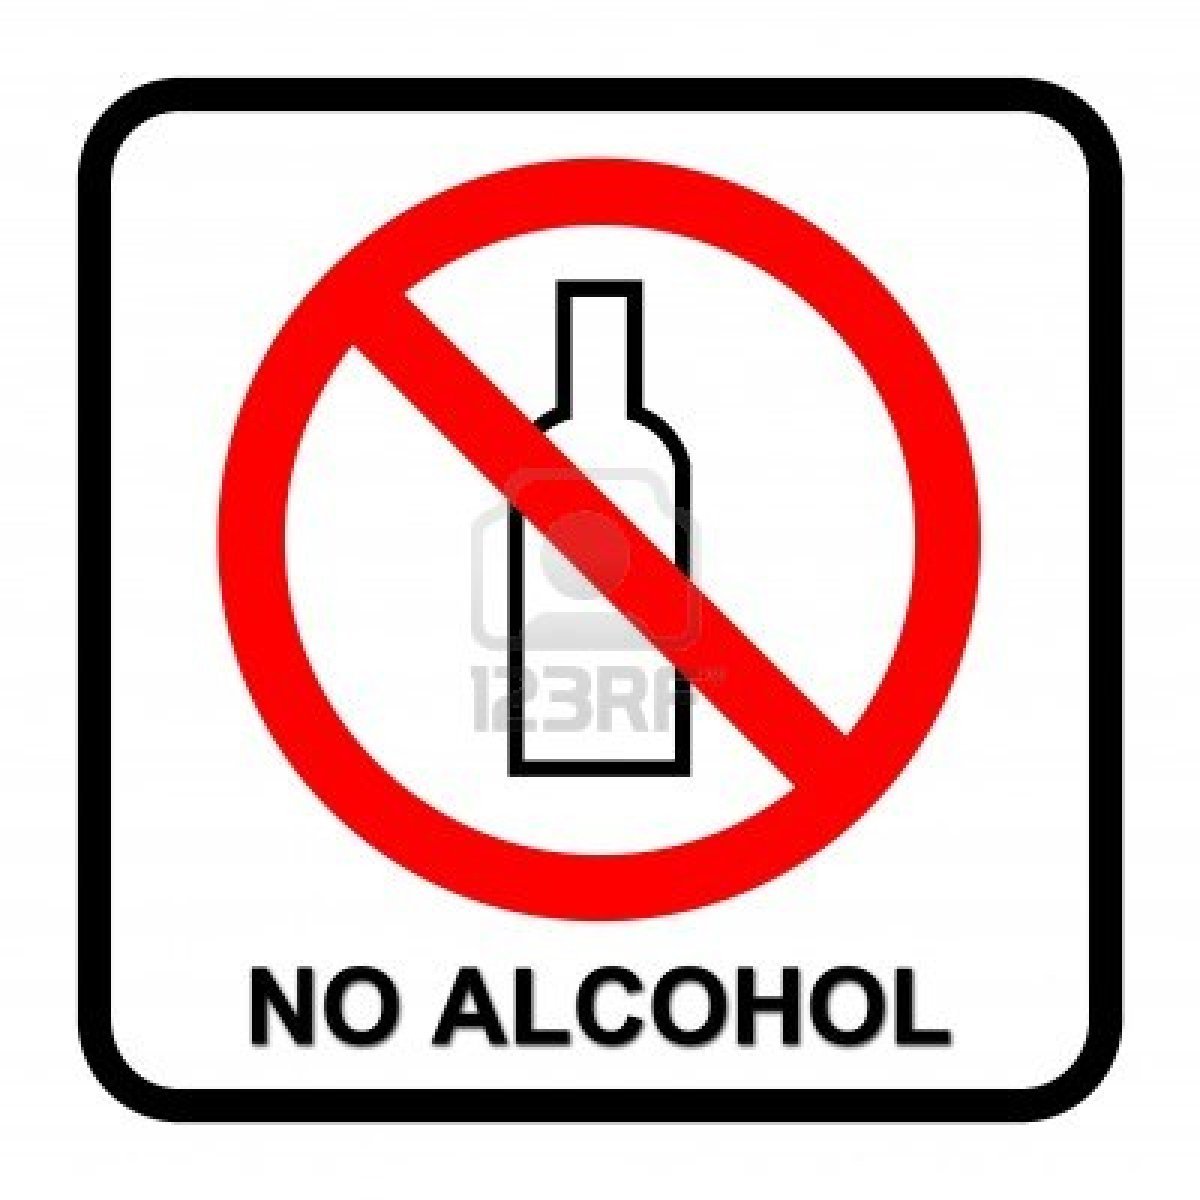 17212332-no-alcohol-sign-on-white-background.jpg